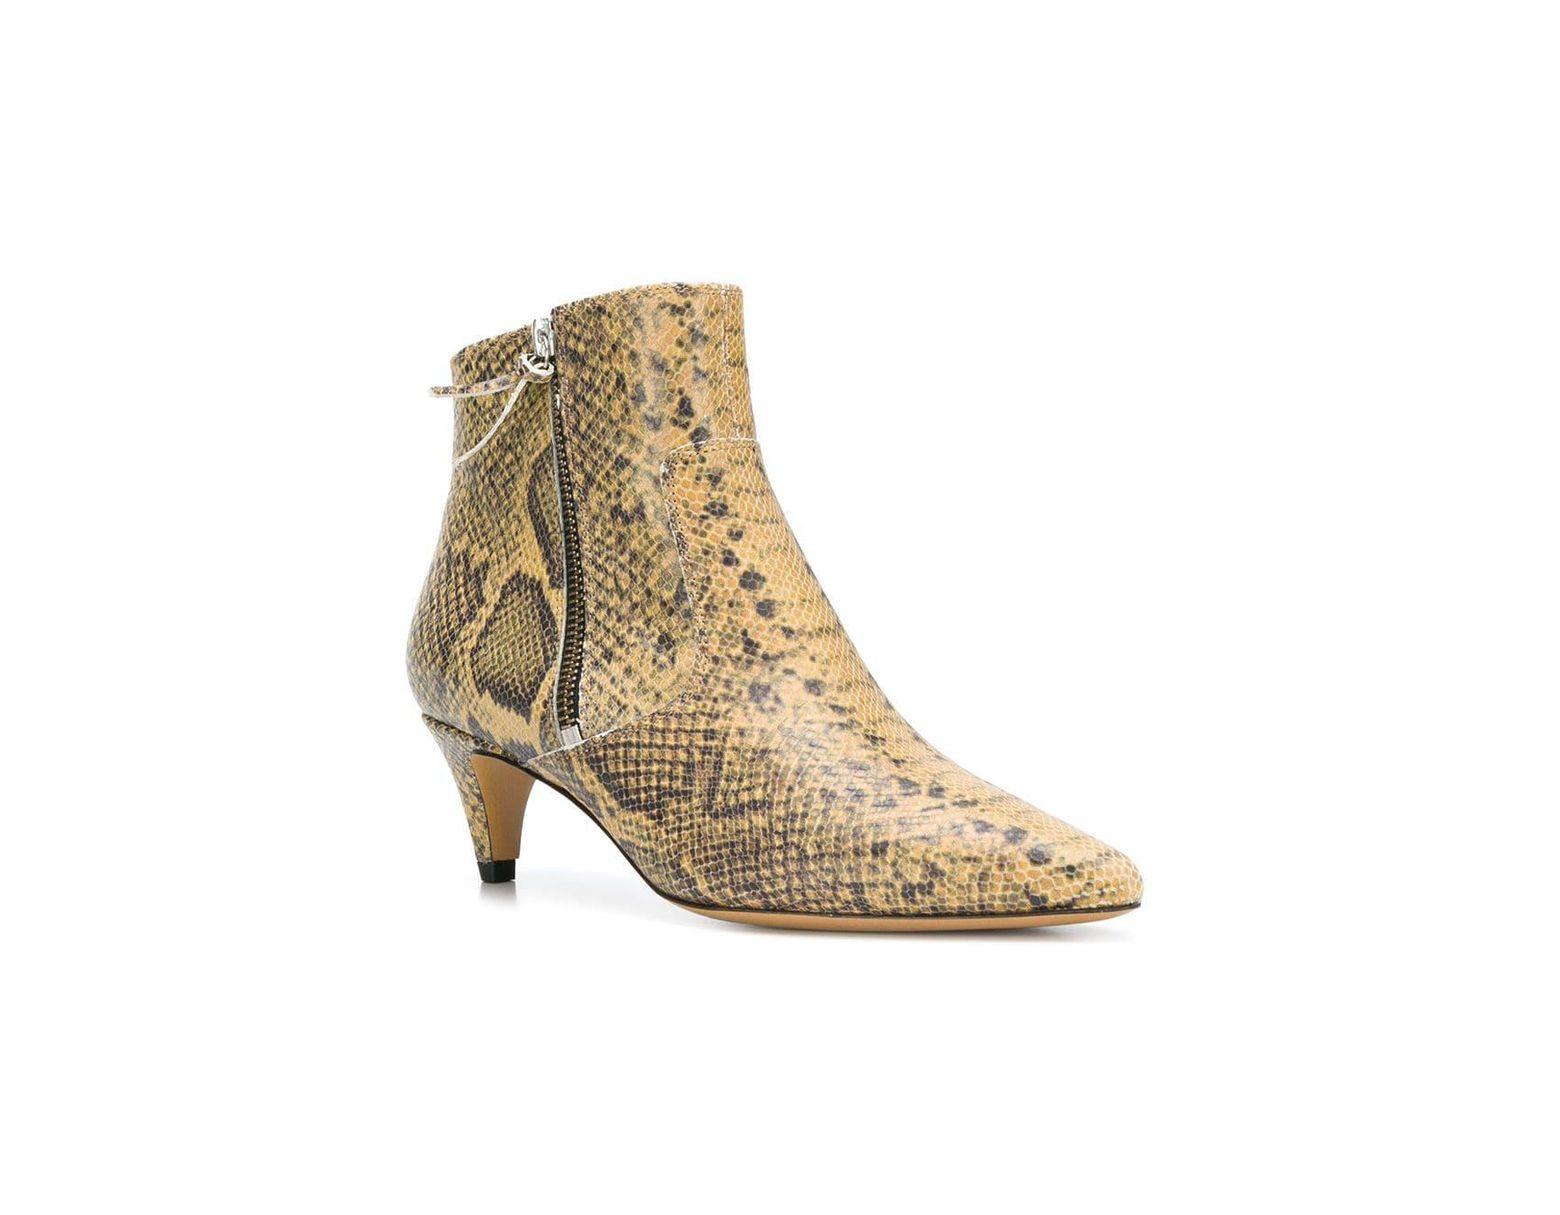 56dc354a55 Isabel Marant Snake Printed Kitten Heel Boot in Natural - Save 11% - Lyst